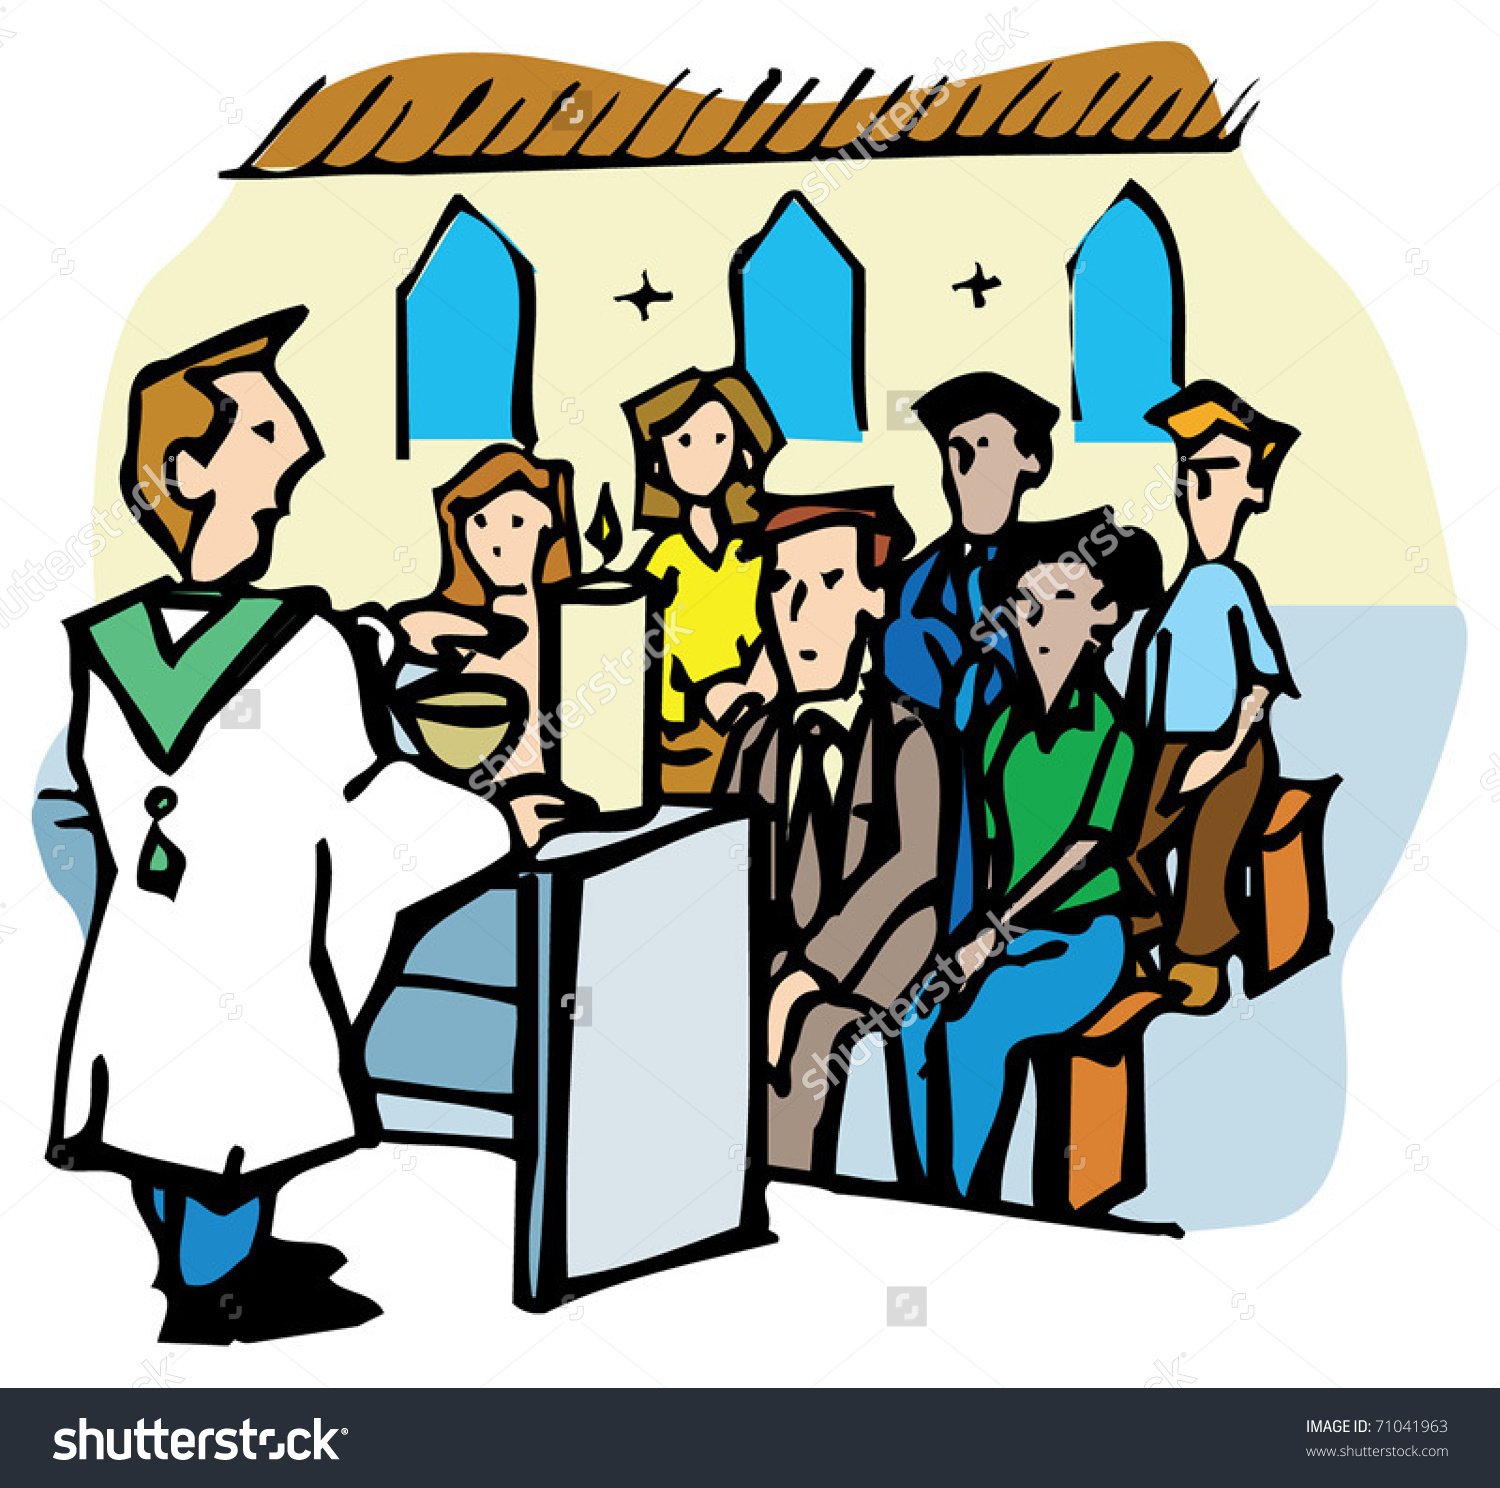 Congregation Prayer Images Clipart.